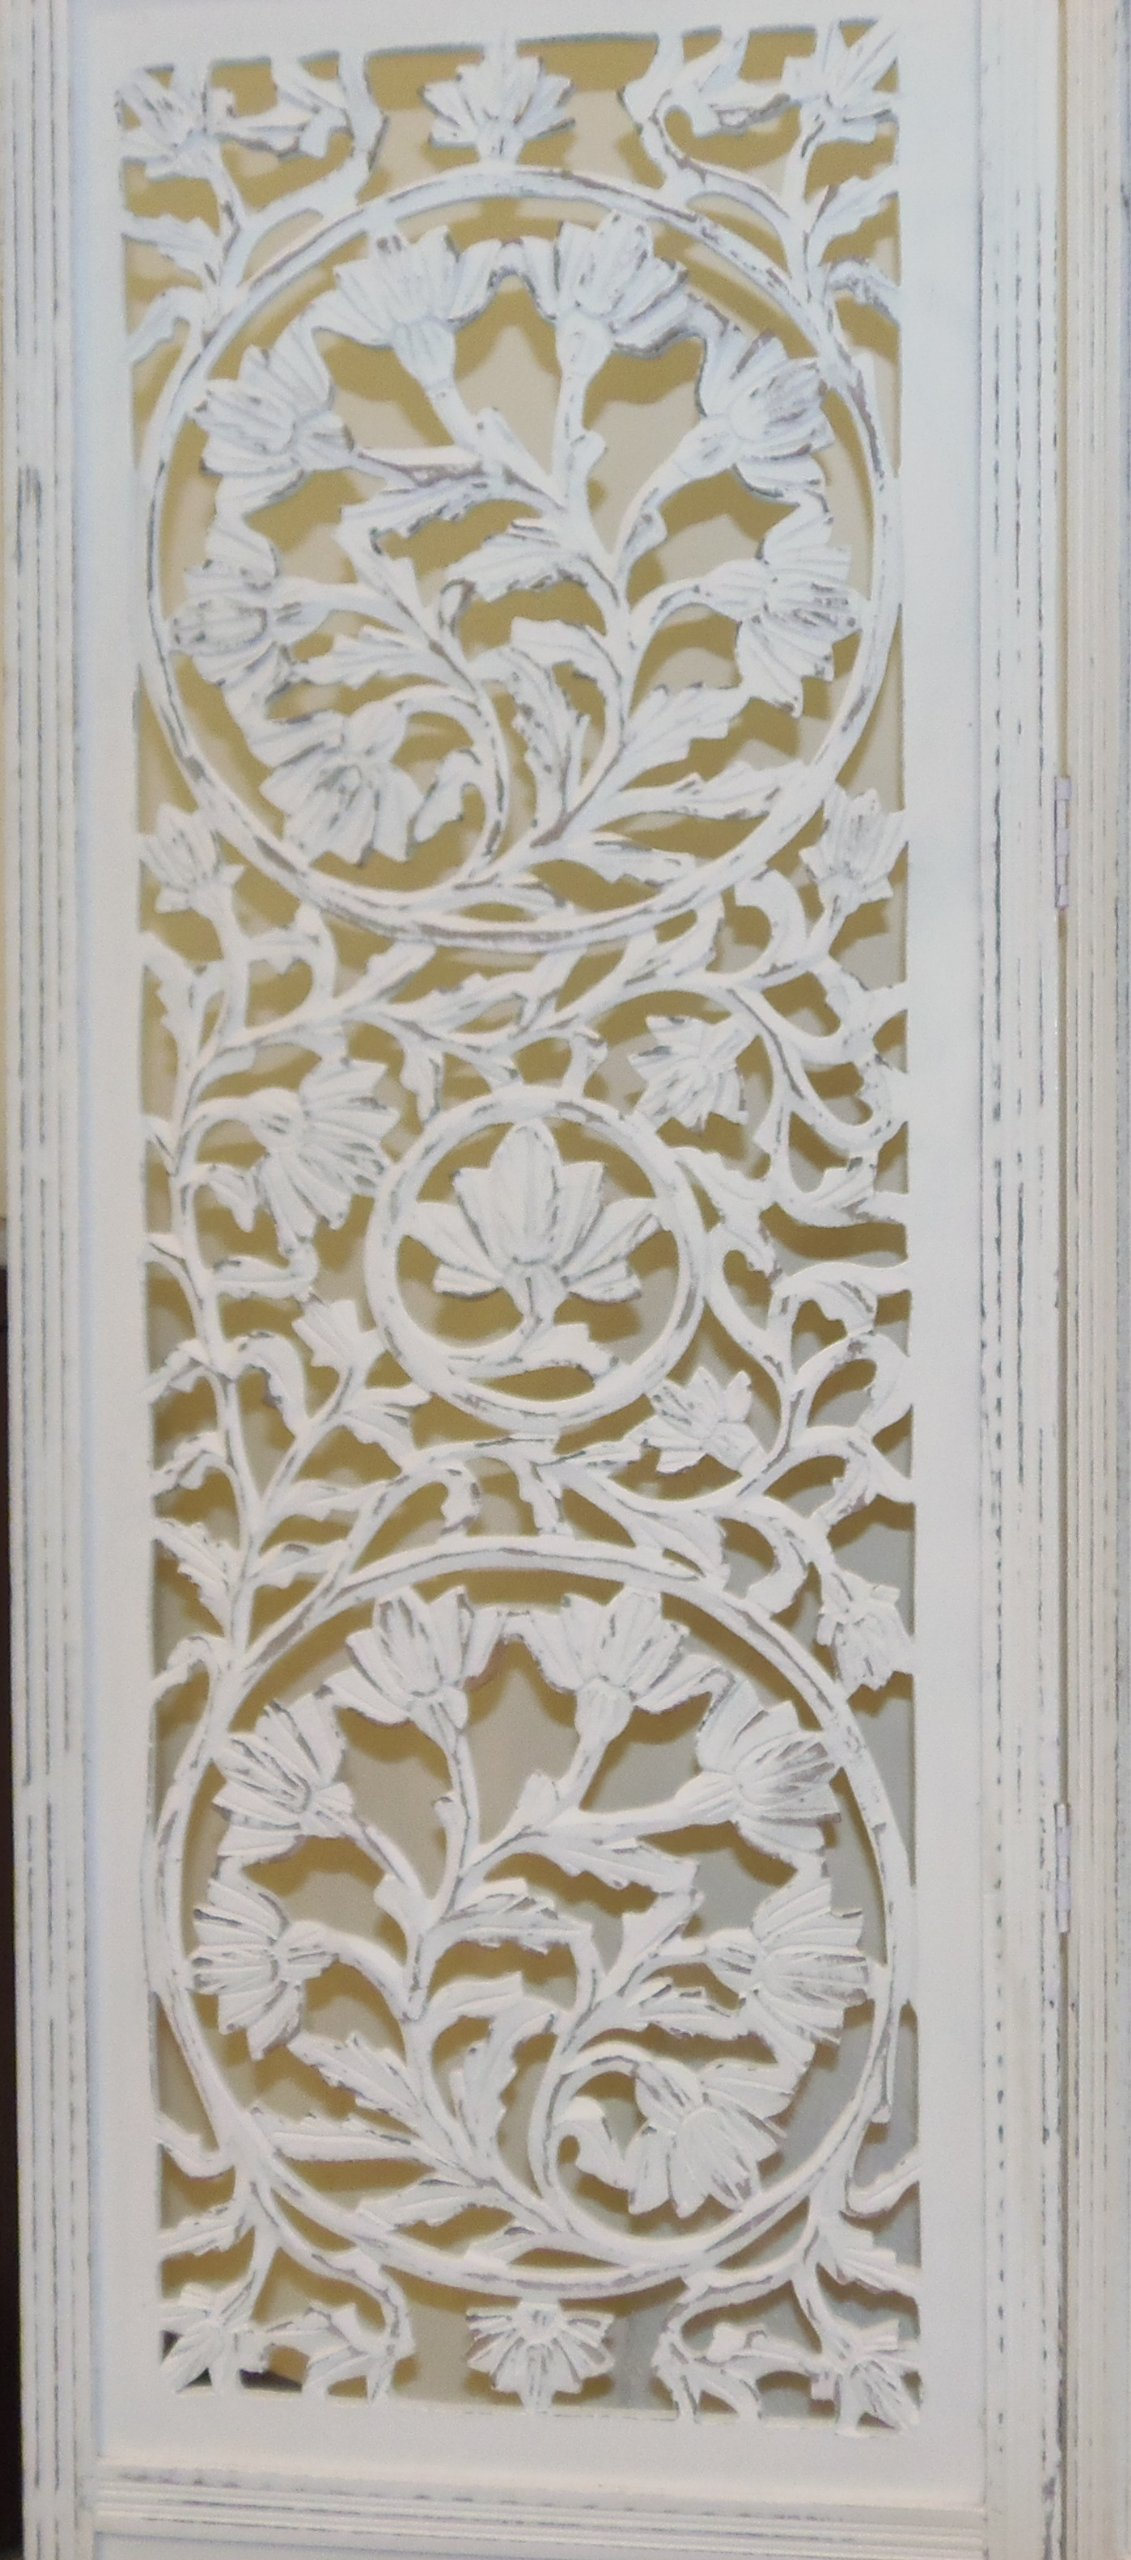 Kamal The Lotus Antique White 4 Panel Handcrafted Wood Room Divider Screen 72x80, Intricately carved on both sides making it fully reversible, highly versatile. Hides clutter, adds dÃcor by Cotton Craft (Image #3)